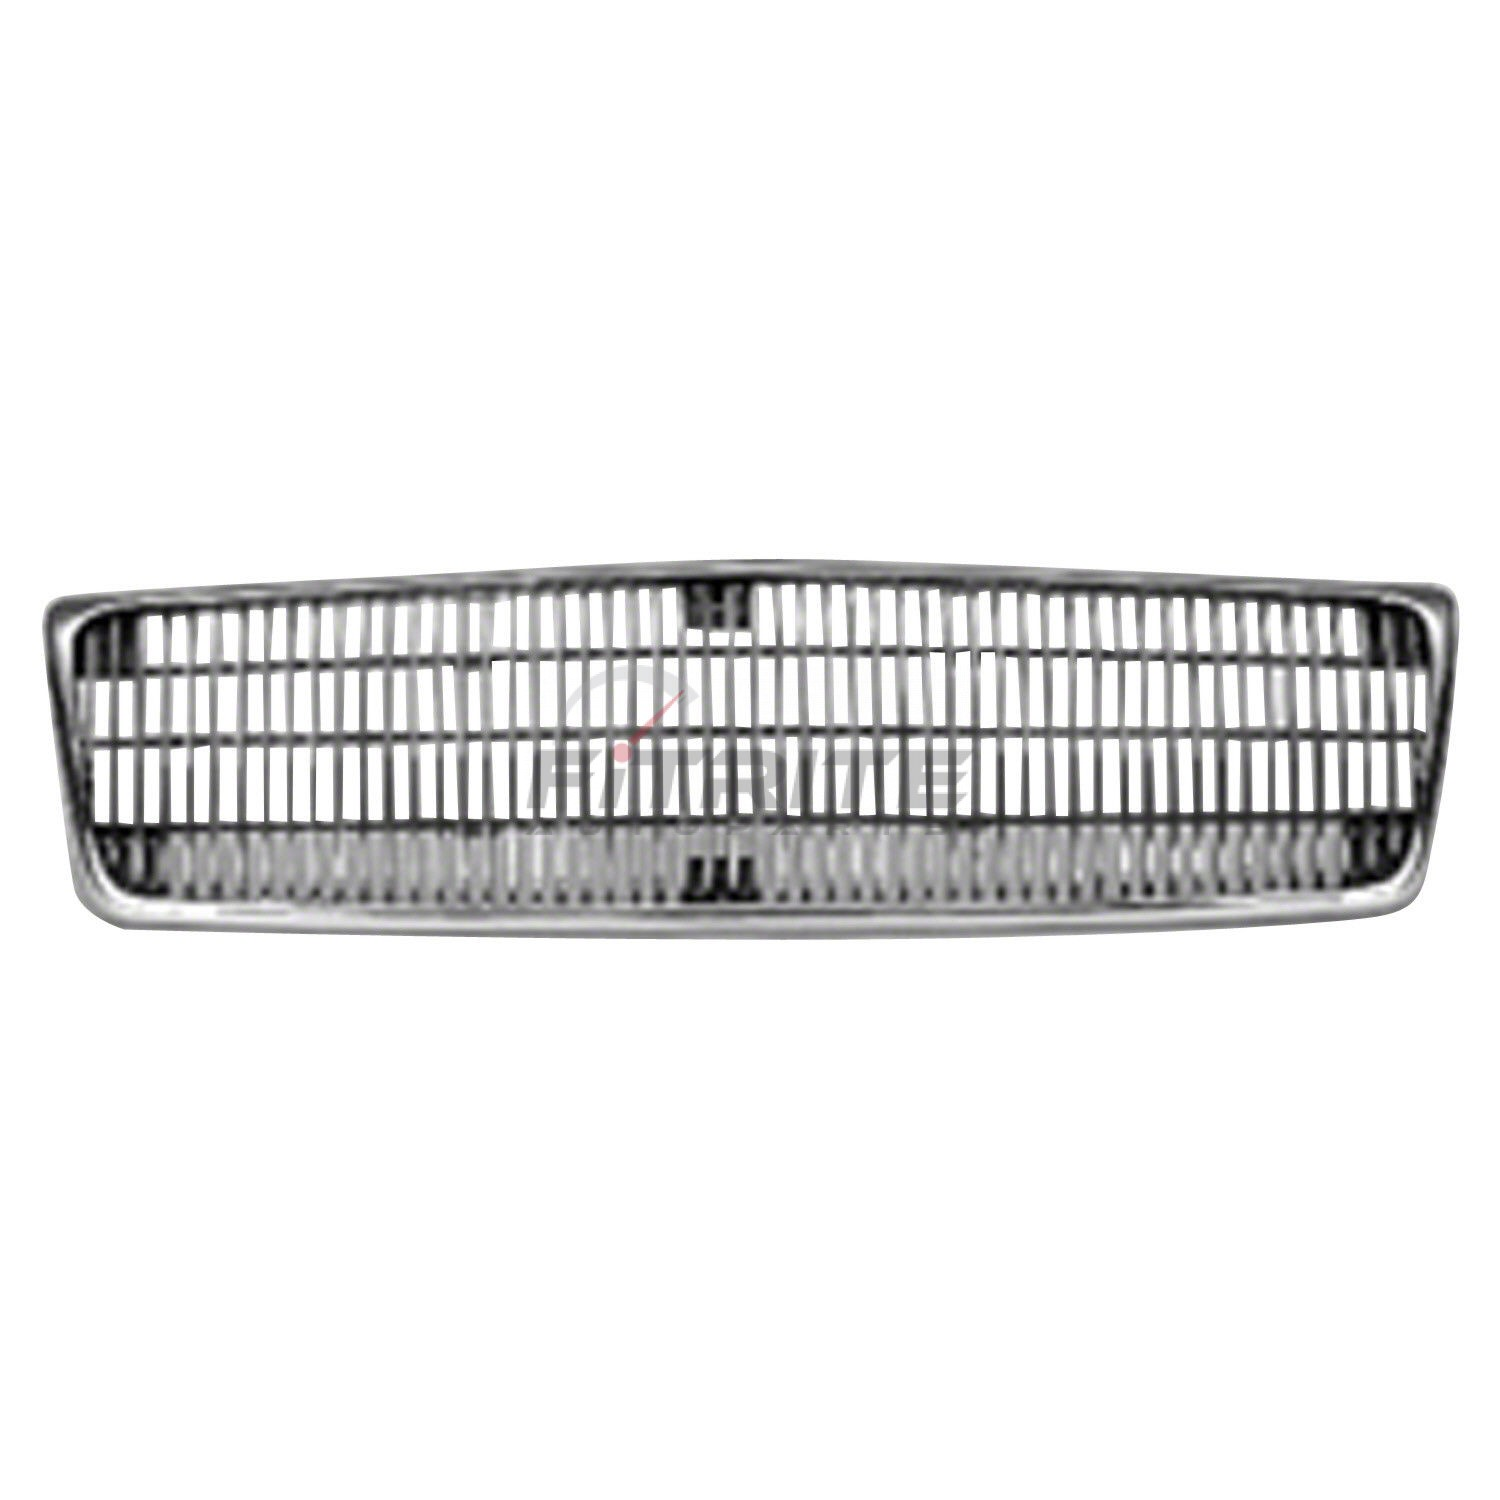 NEW FRONT GRILLE FOR 1994-1996 BUICK CENTURY GM1200111